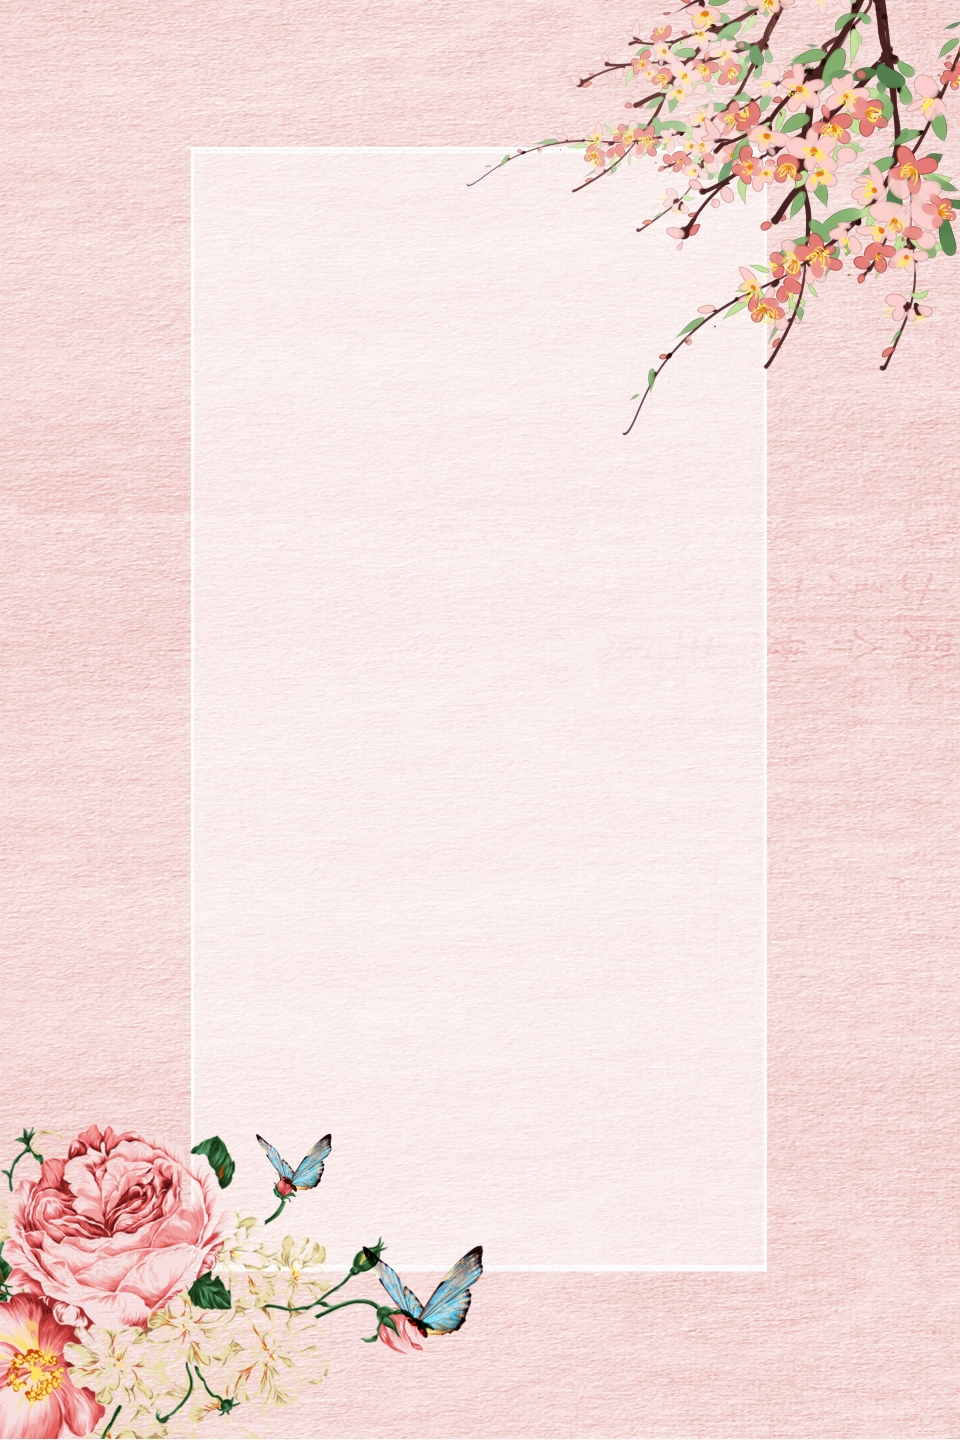 Vintage Hand Drawn Floral Watercolor Background Background